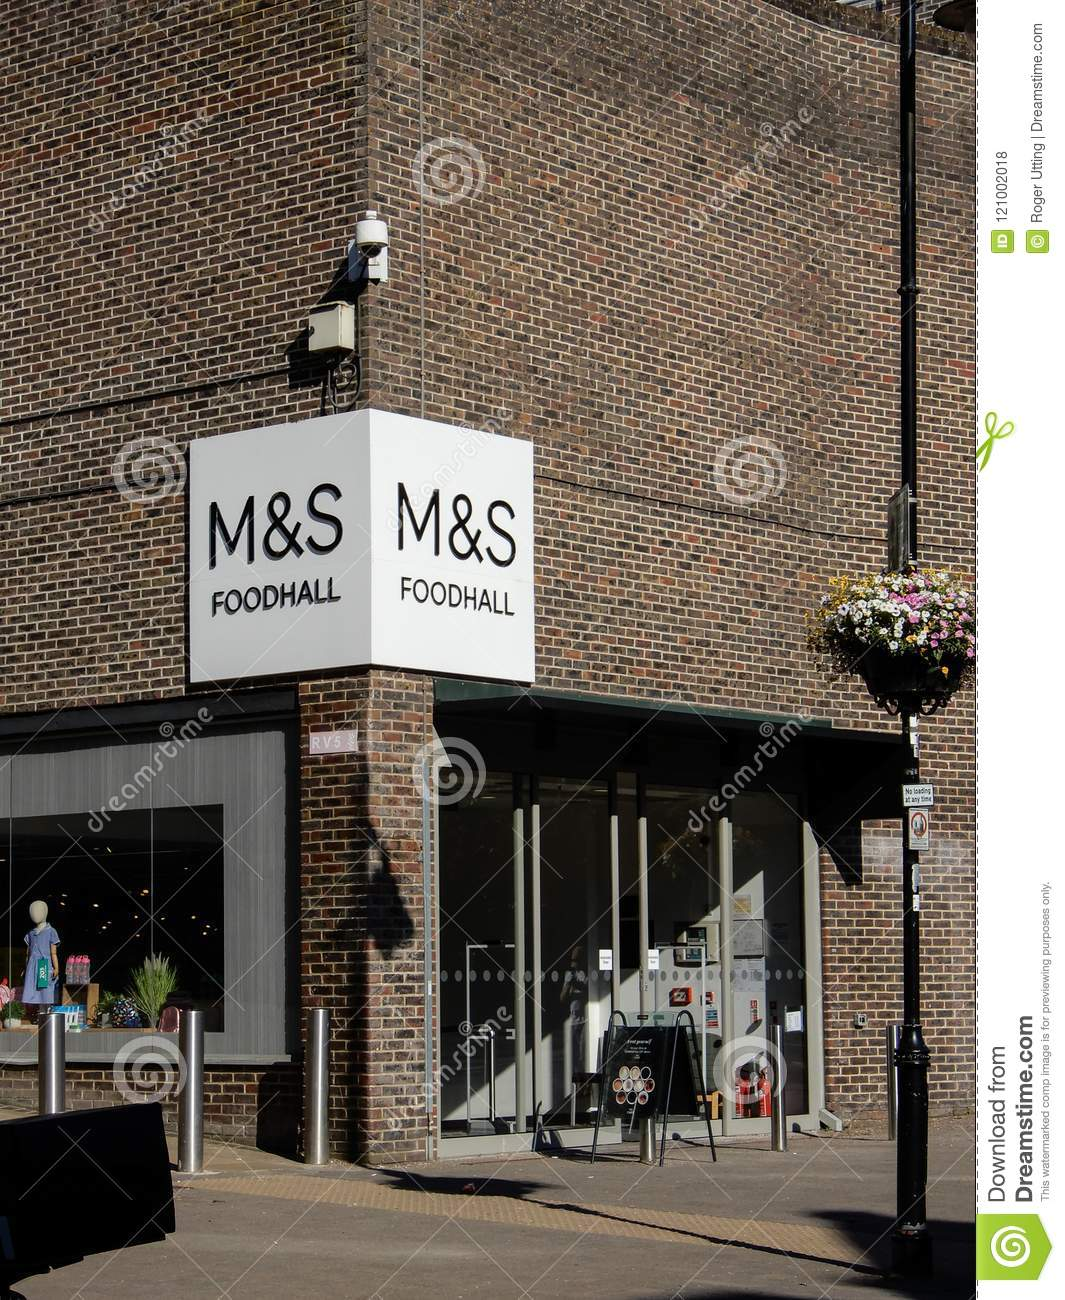 M&S Food hall